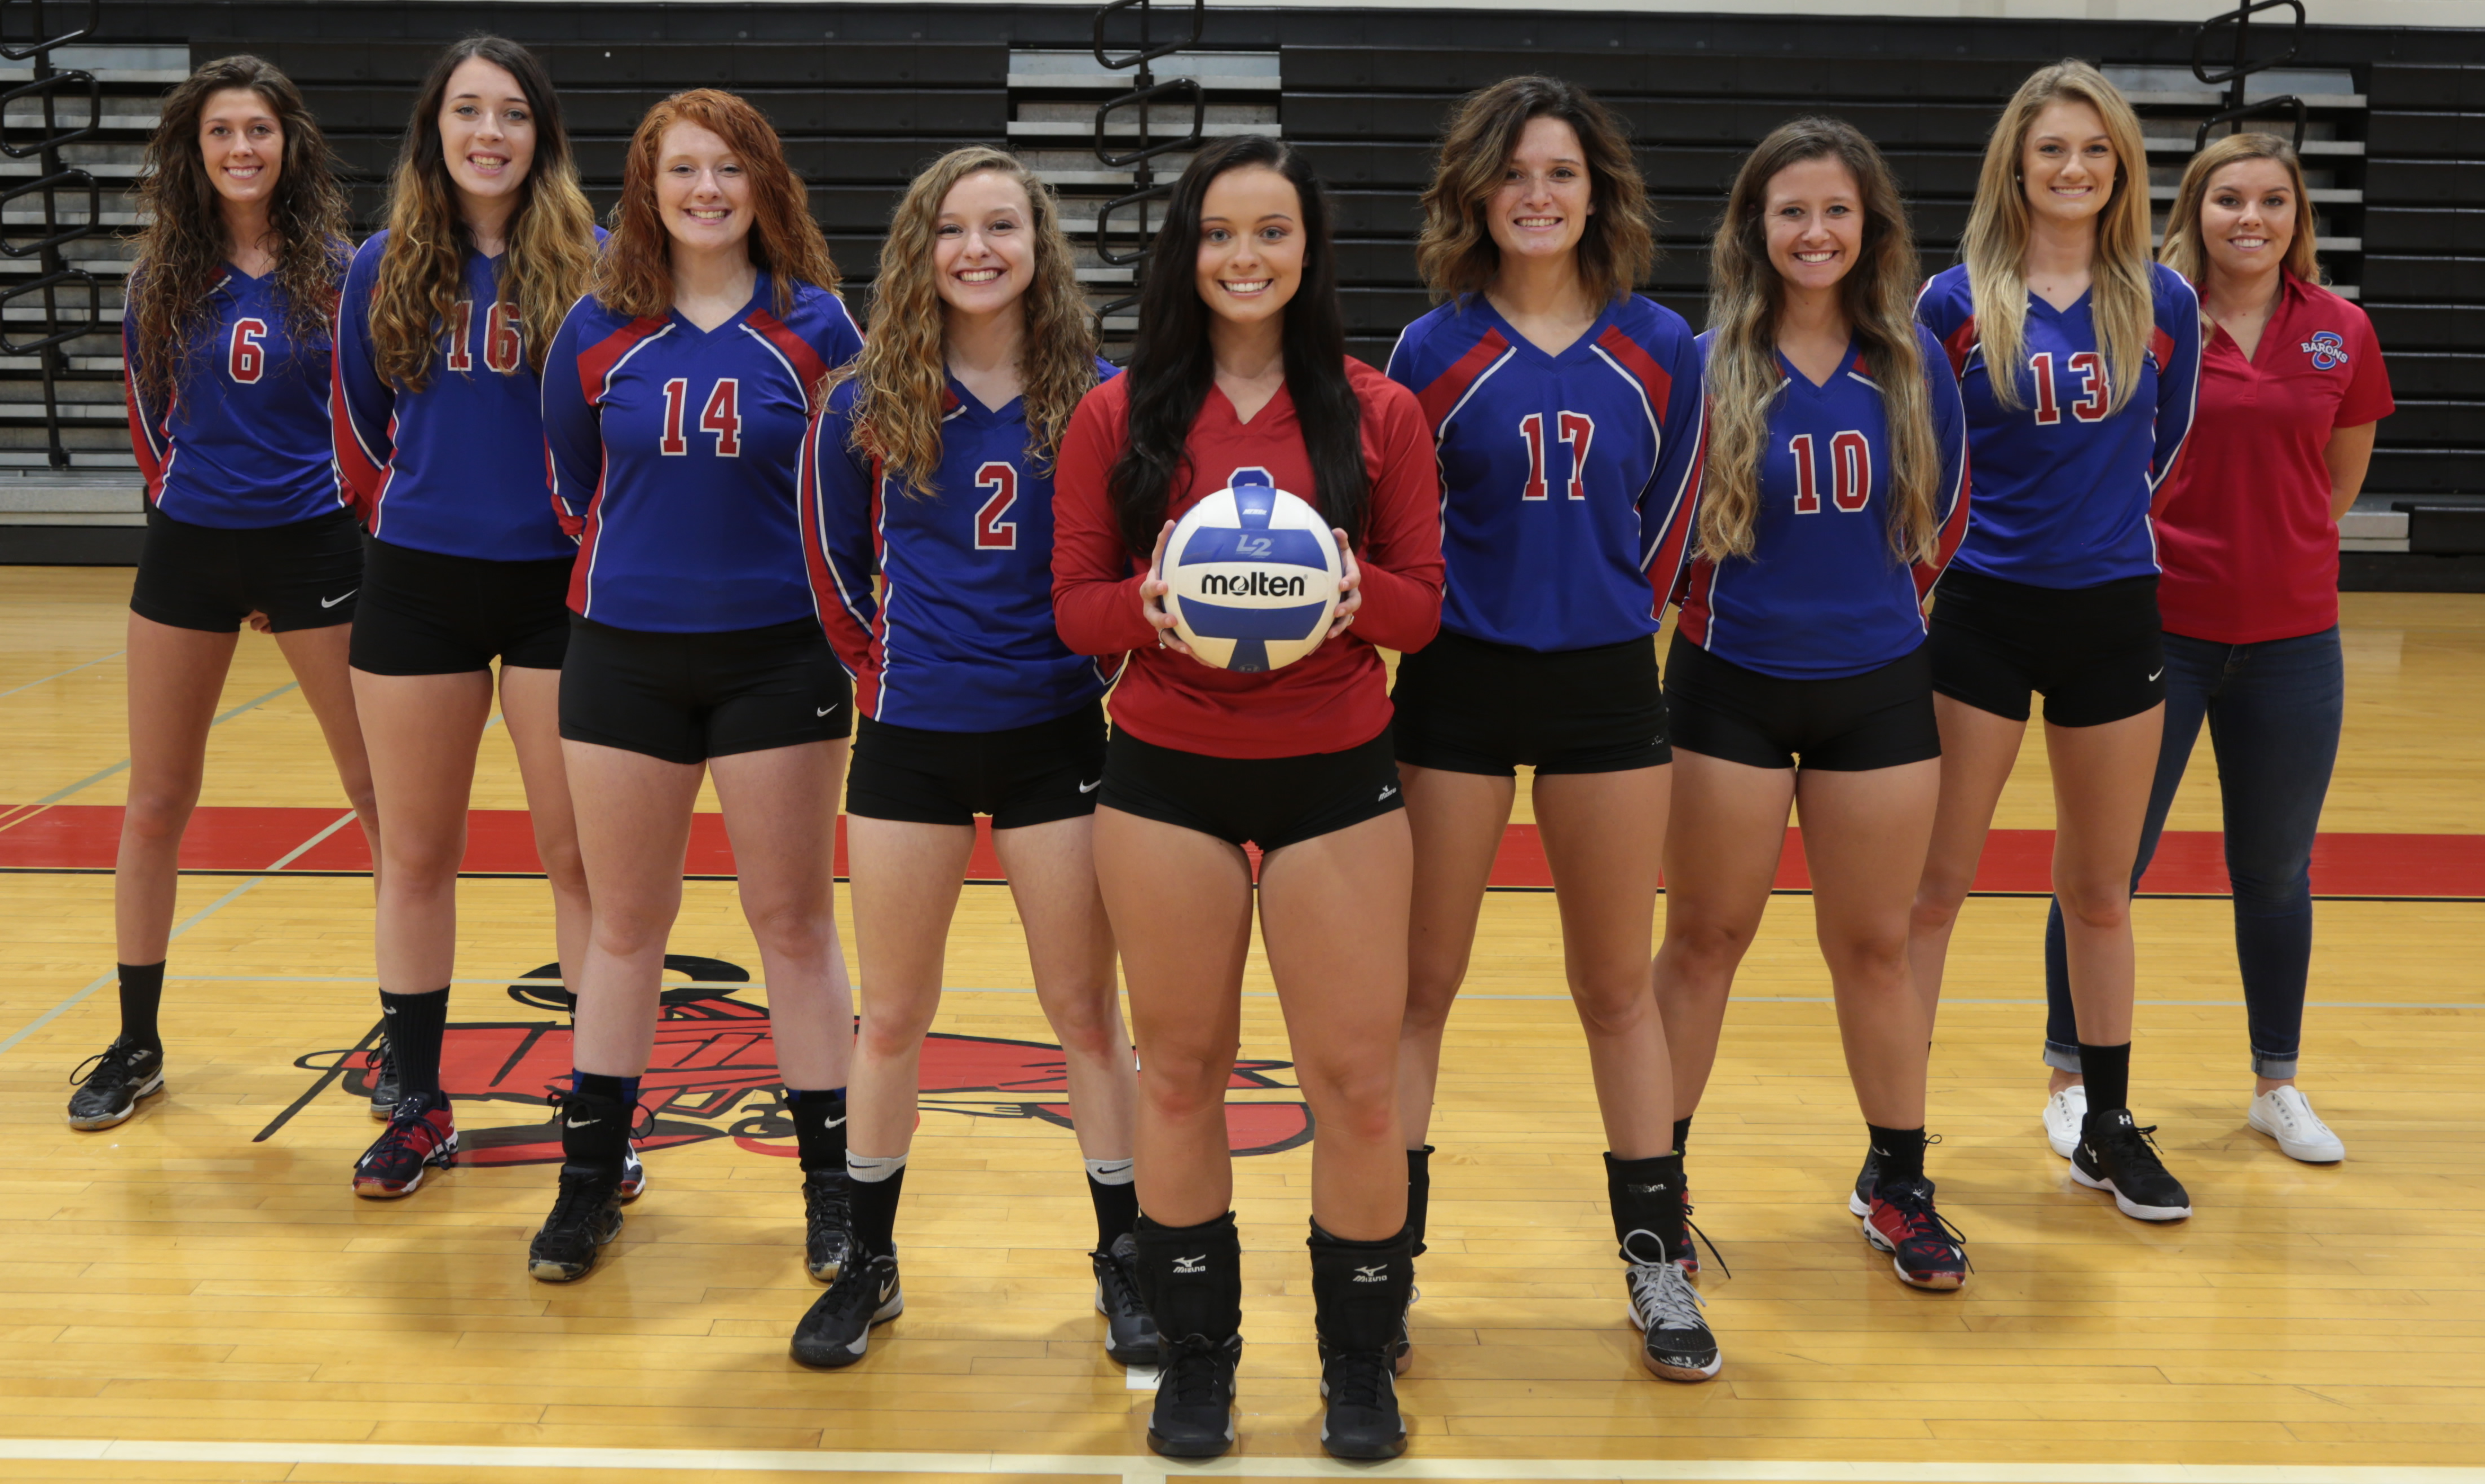 pics-of-girls-volleyball-team